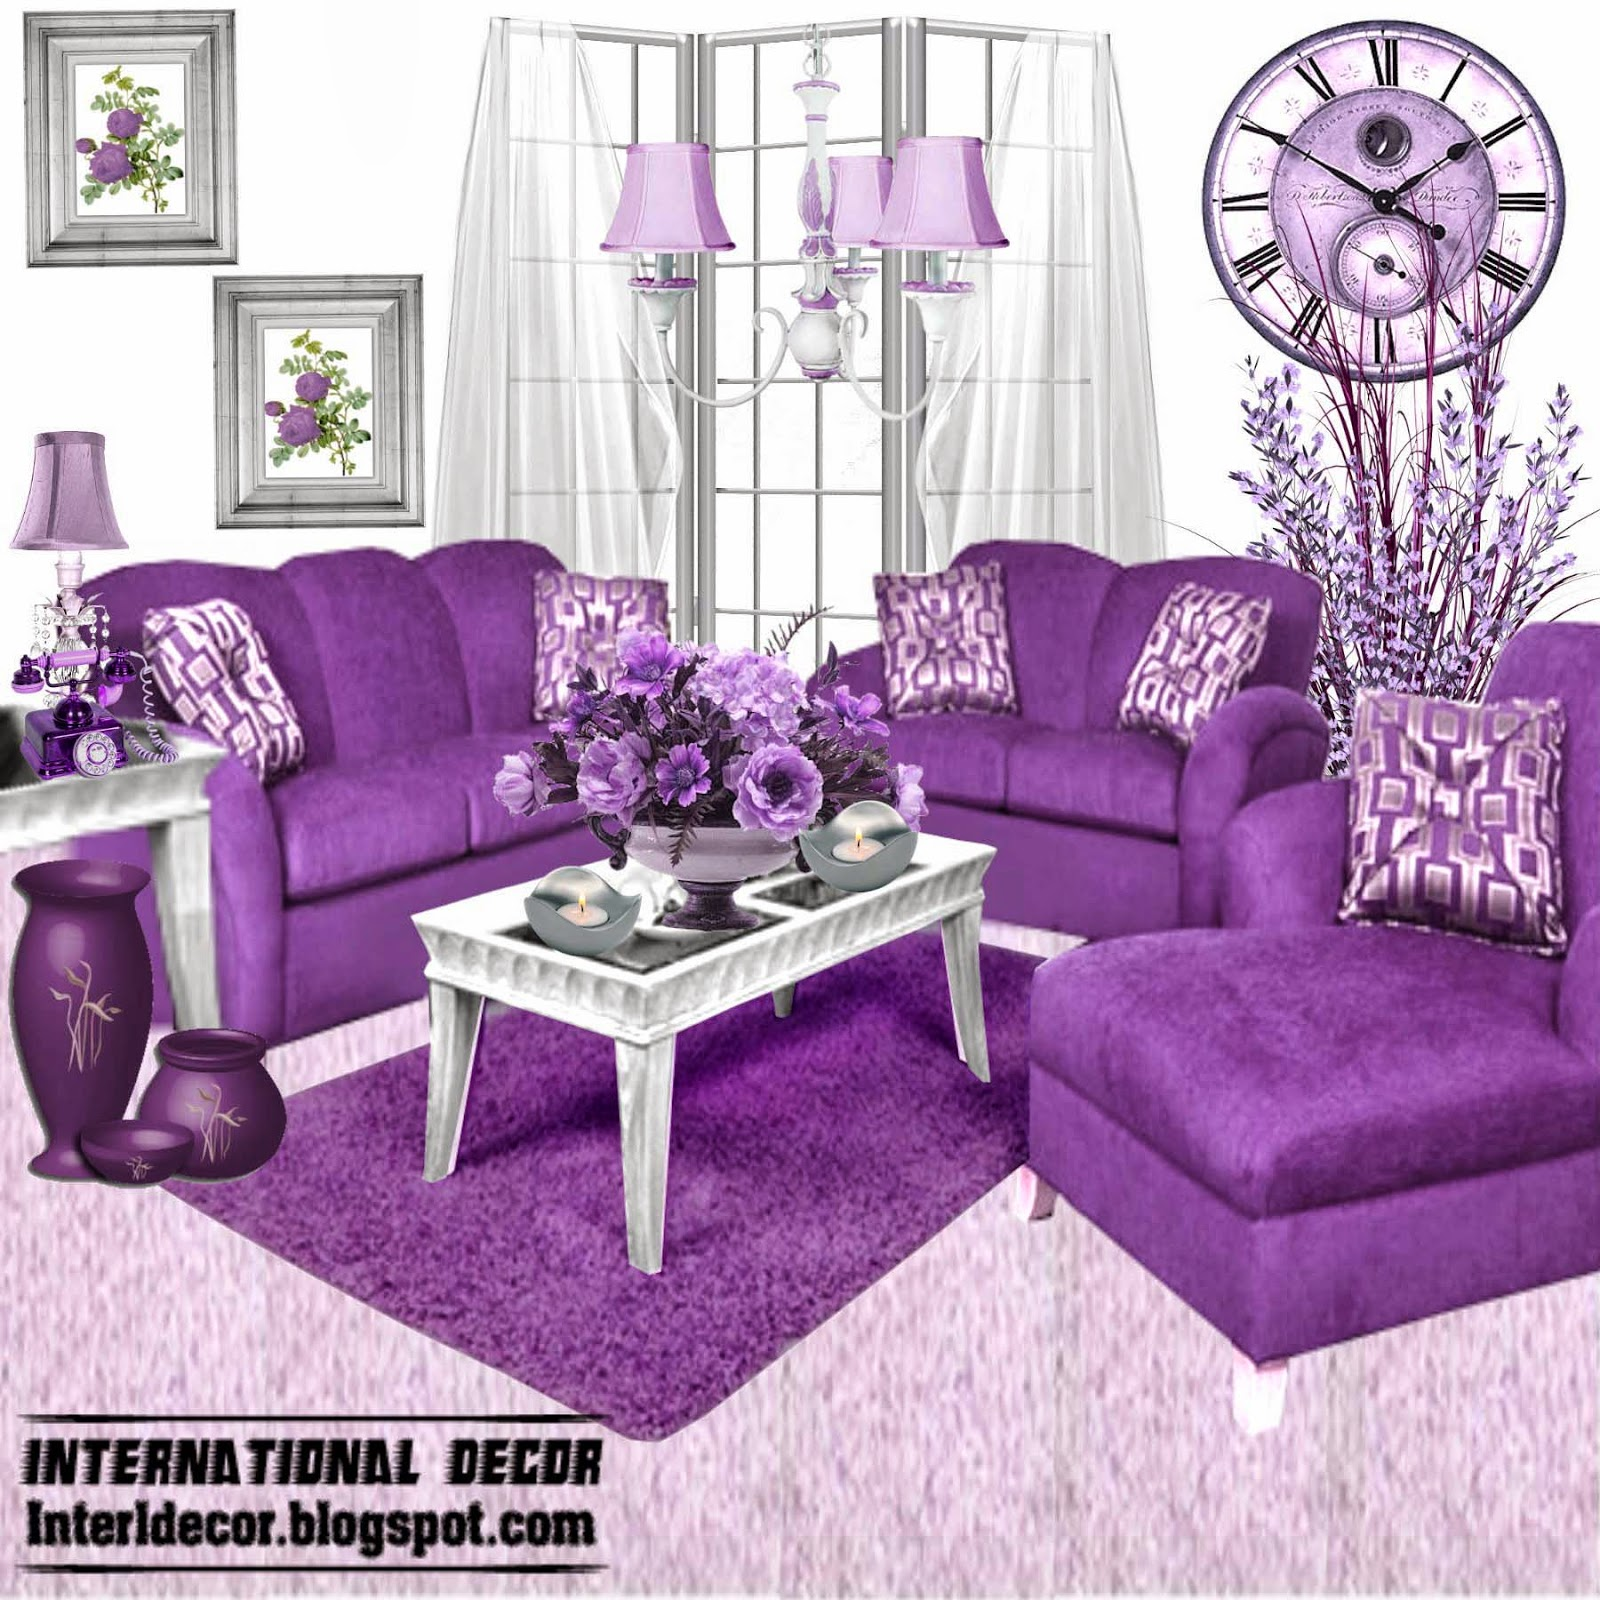 Luxury purple furniture sets sofas chairs for living for Living room chair ideas